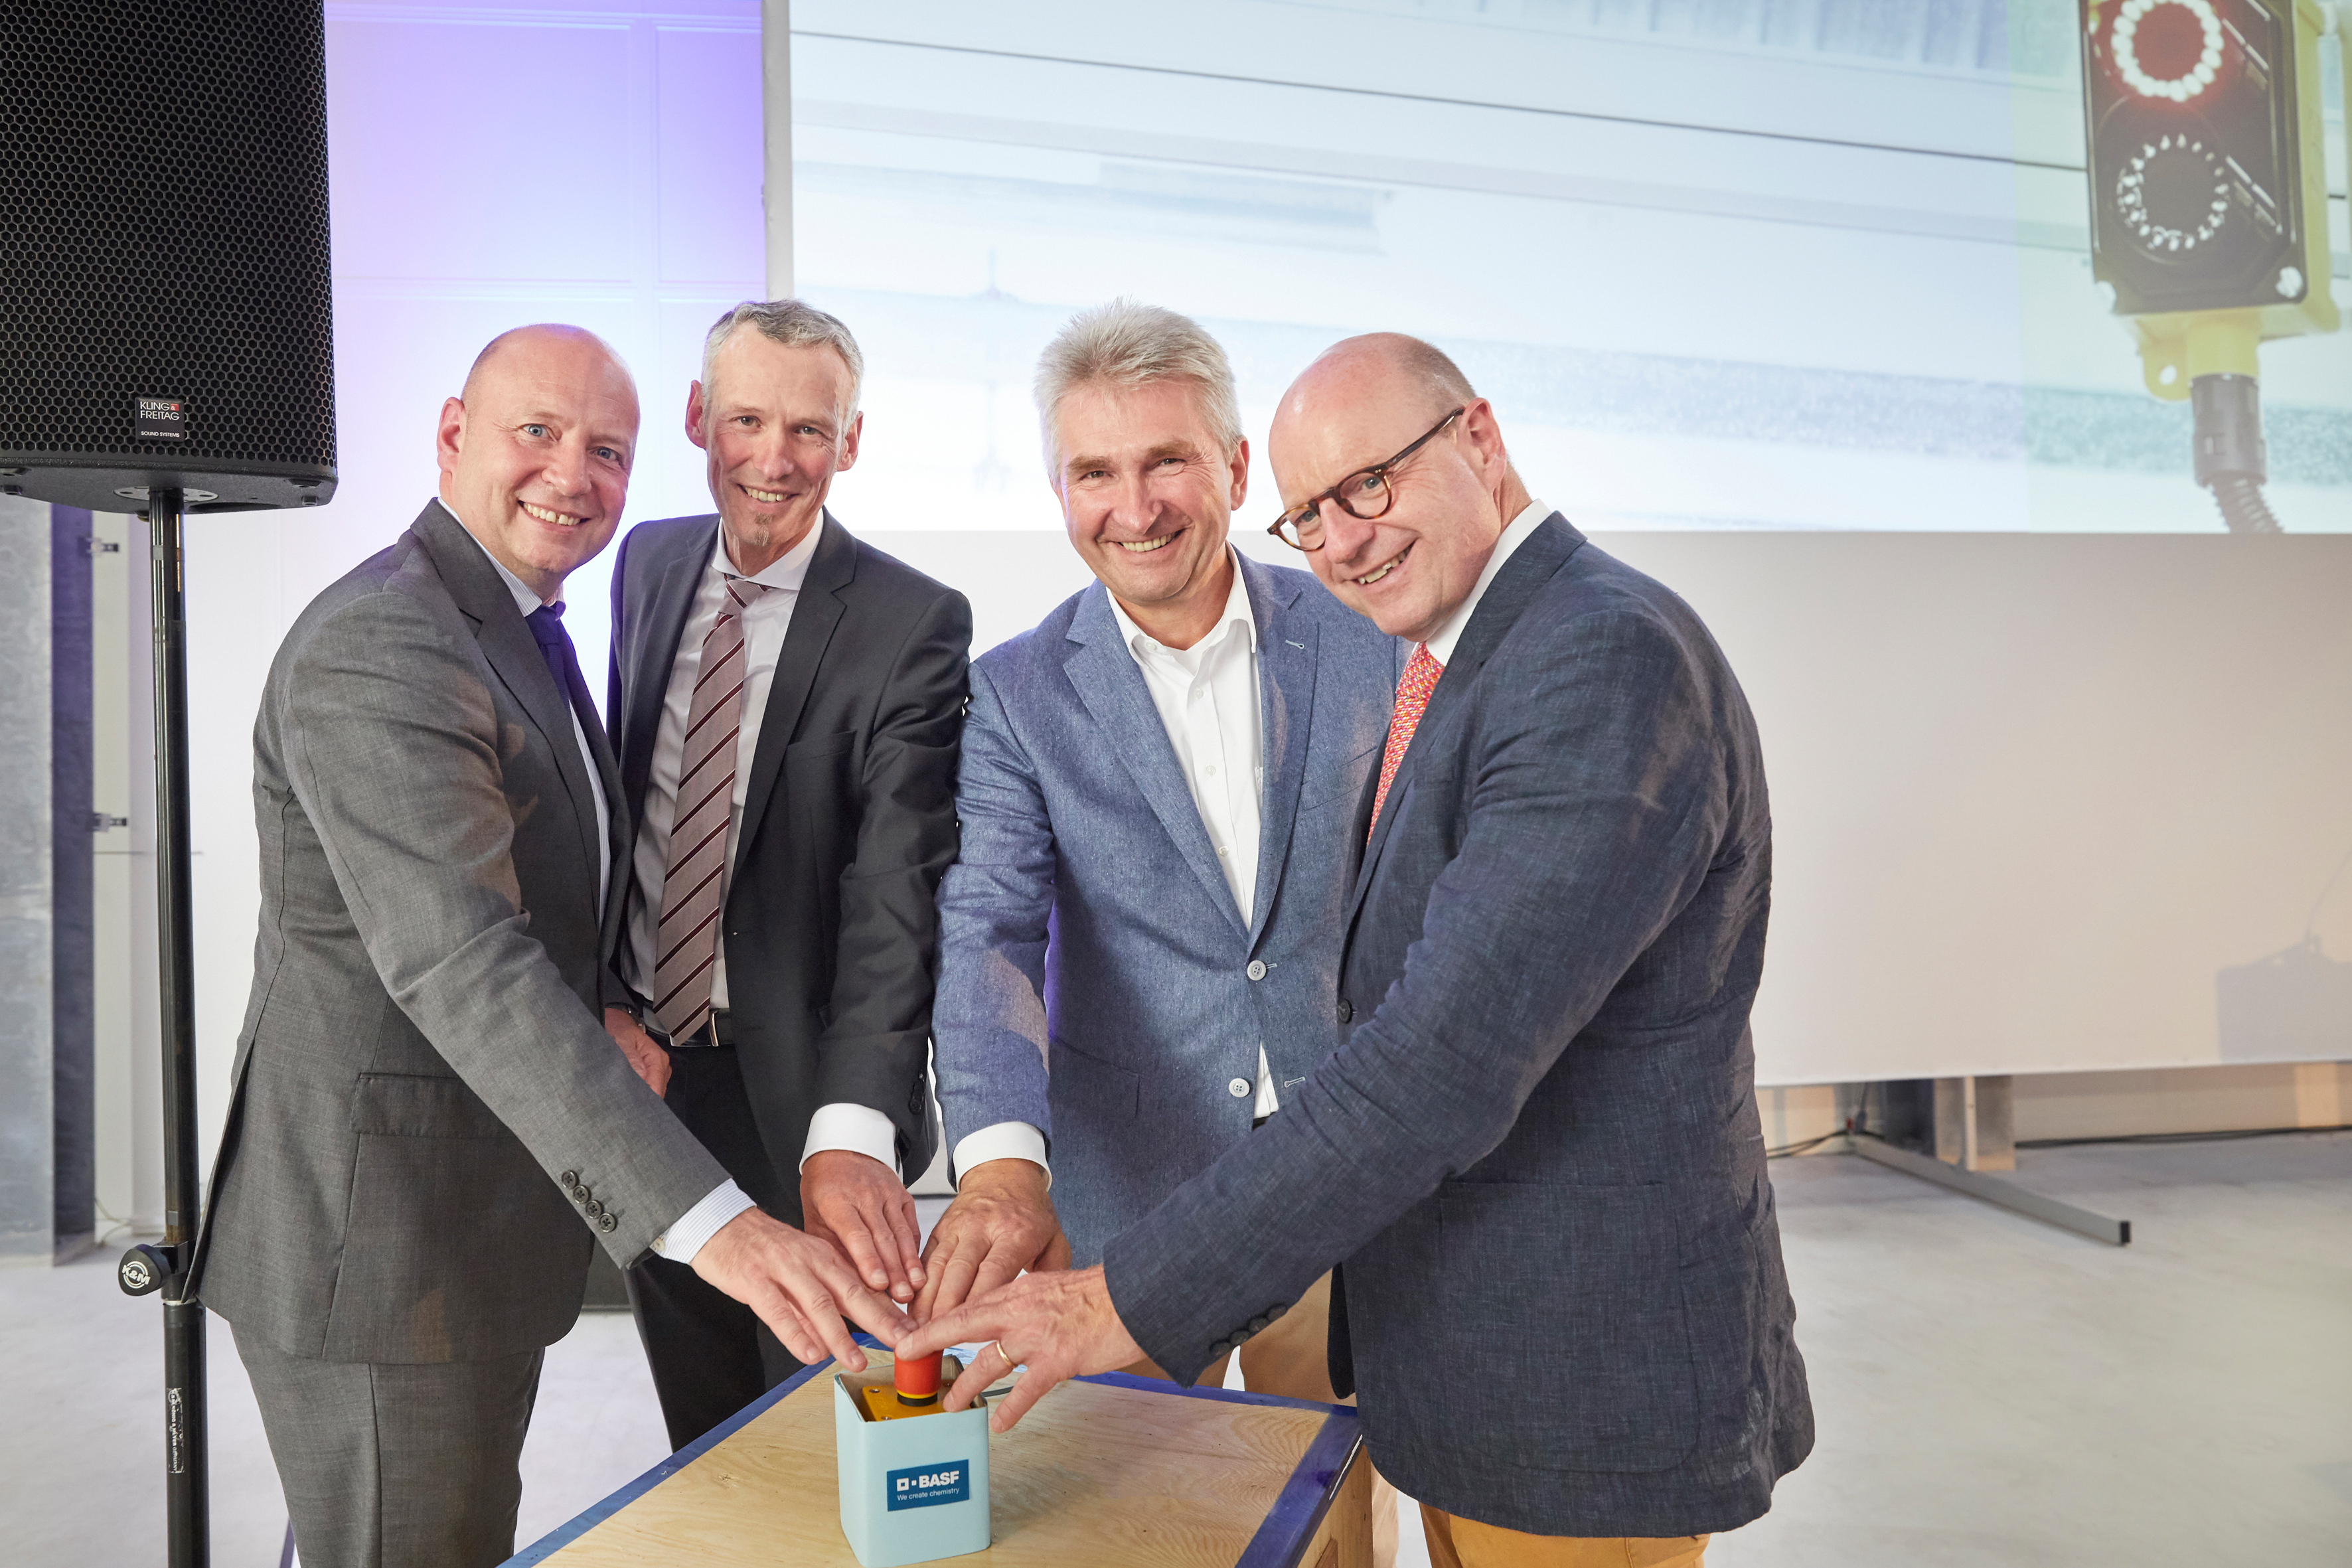 F. l. t. r.: Dirk Bremm (President BASF's Coatings division), Jörg Lenz, Prof. Dr. Andreas Pinkwart and Markus Lewe started up the new plant for functionalising foils (Source: BASF)